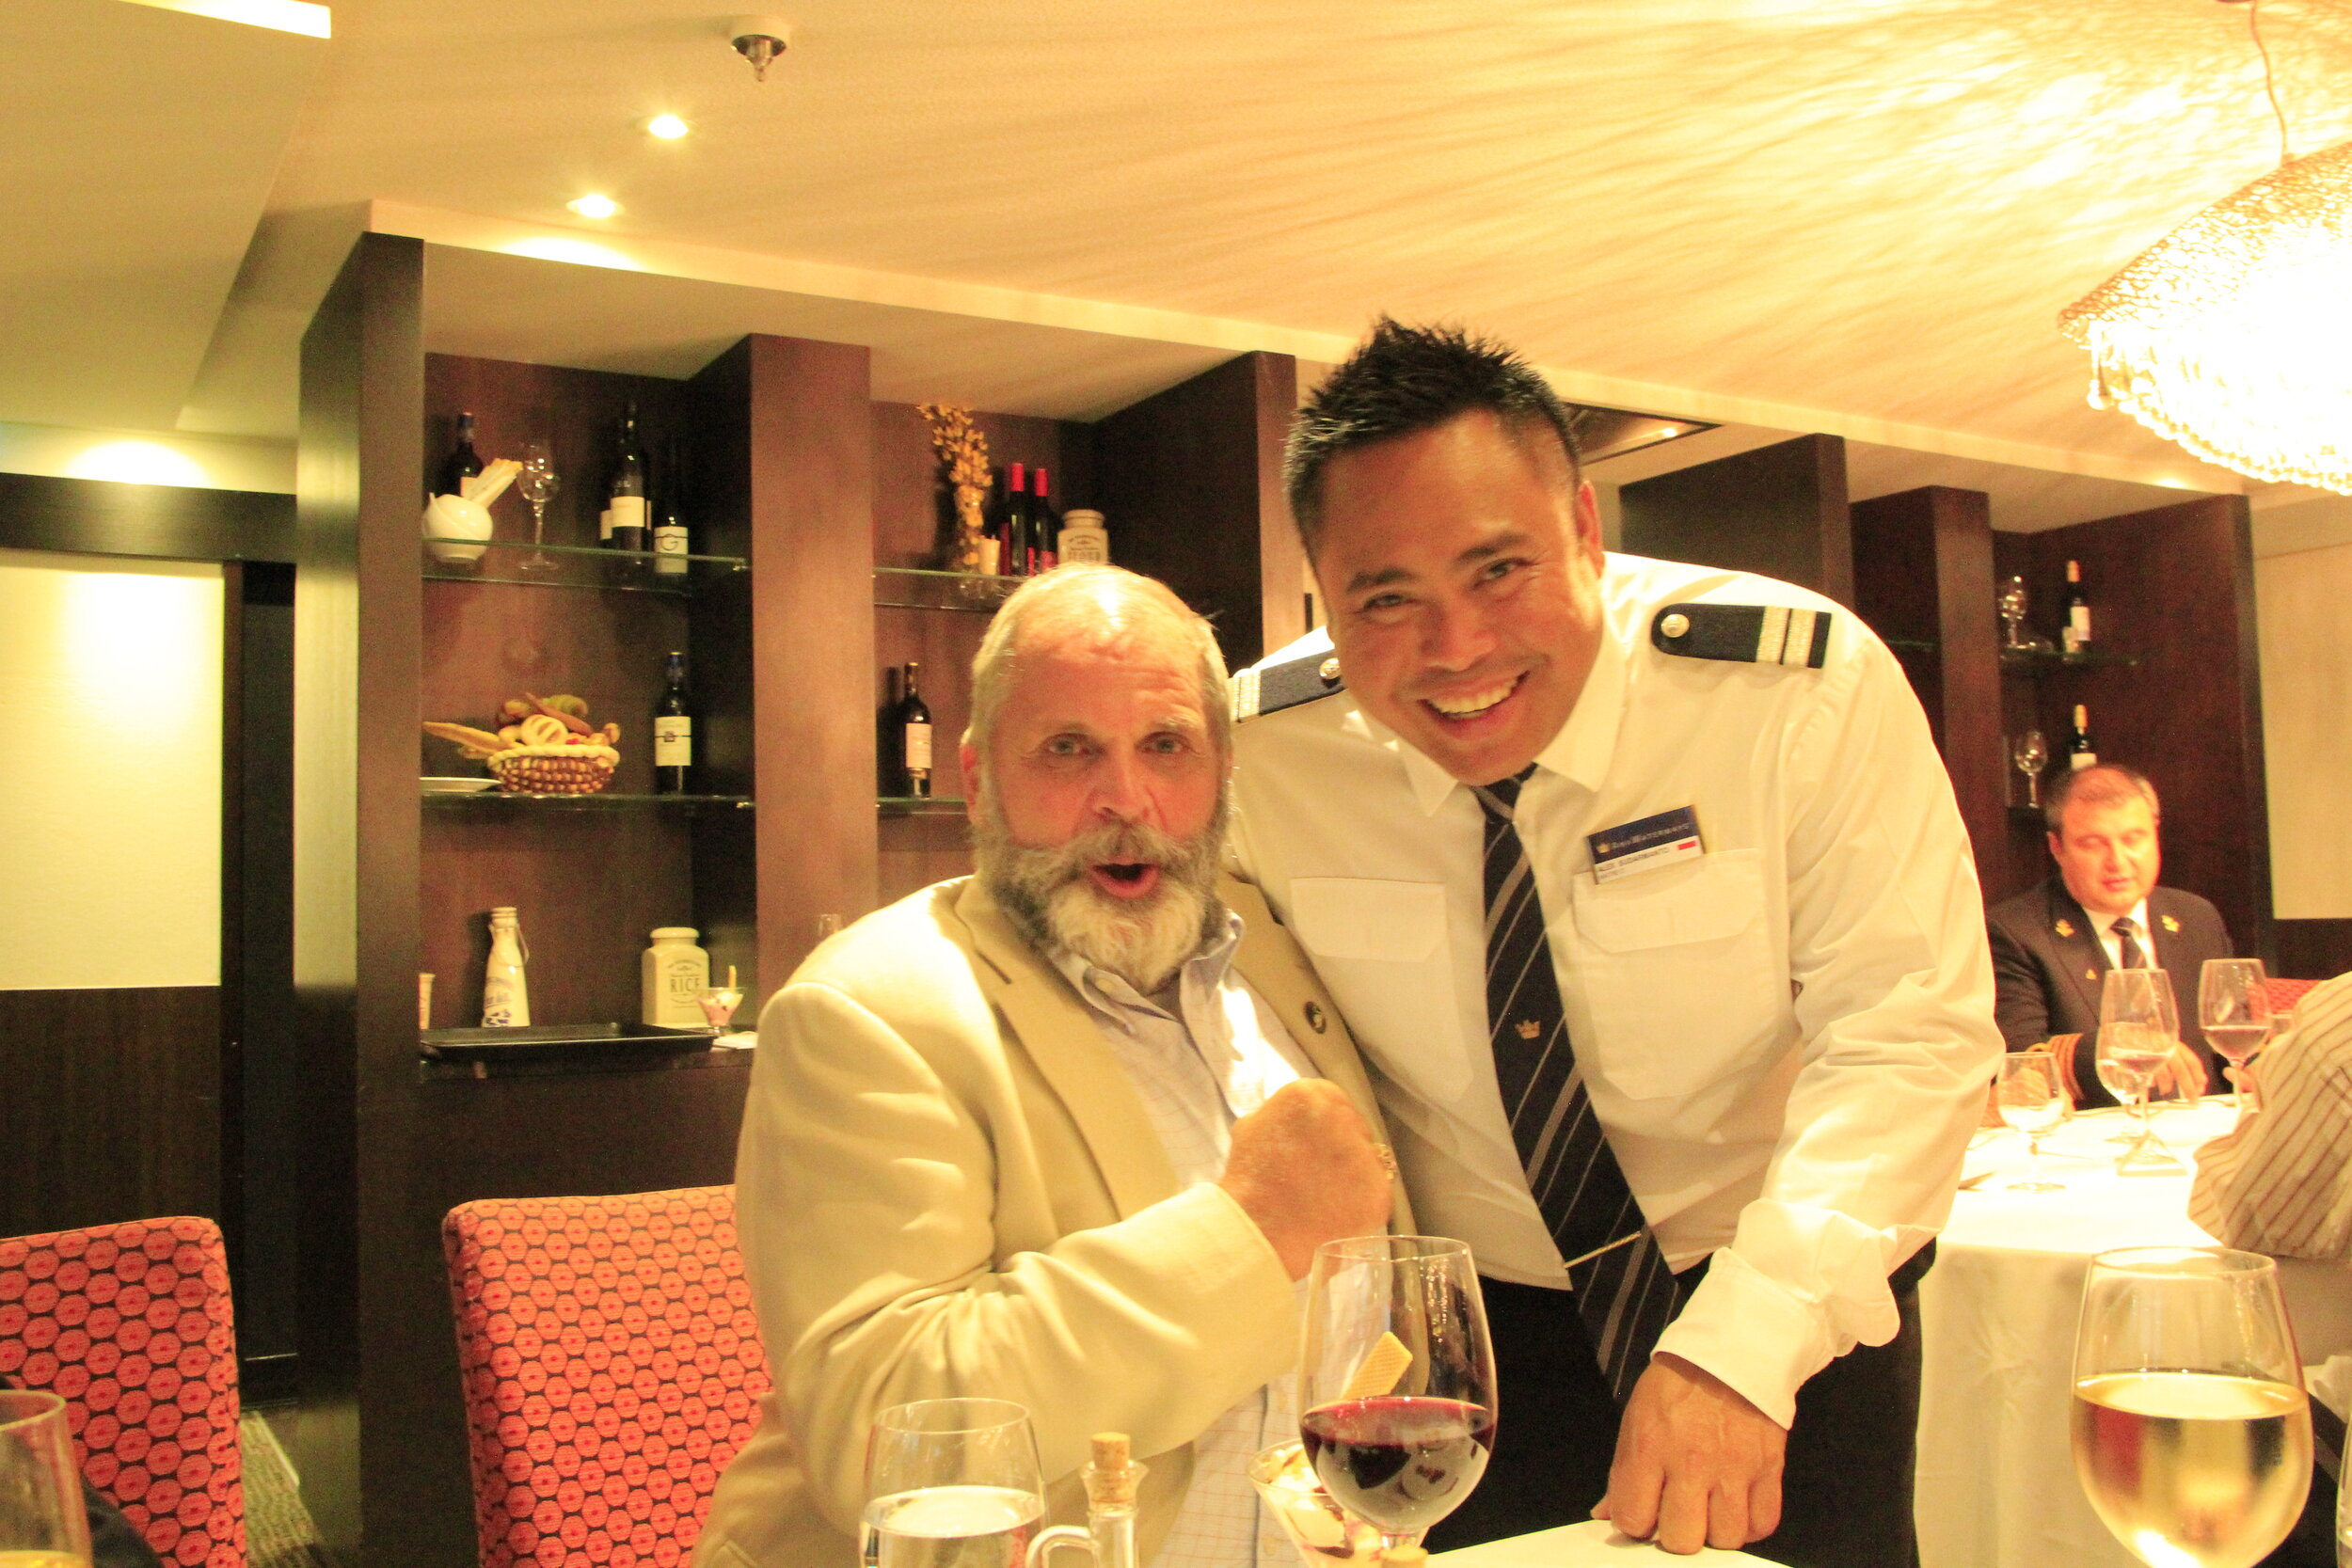 Hank and a staff member on a 2018 AmaWaterways cruise